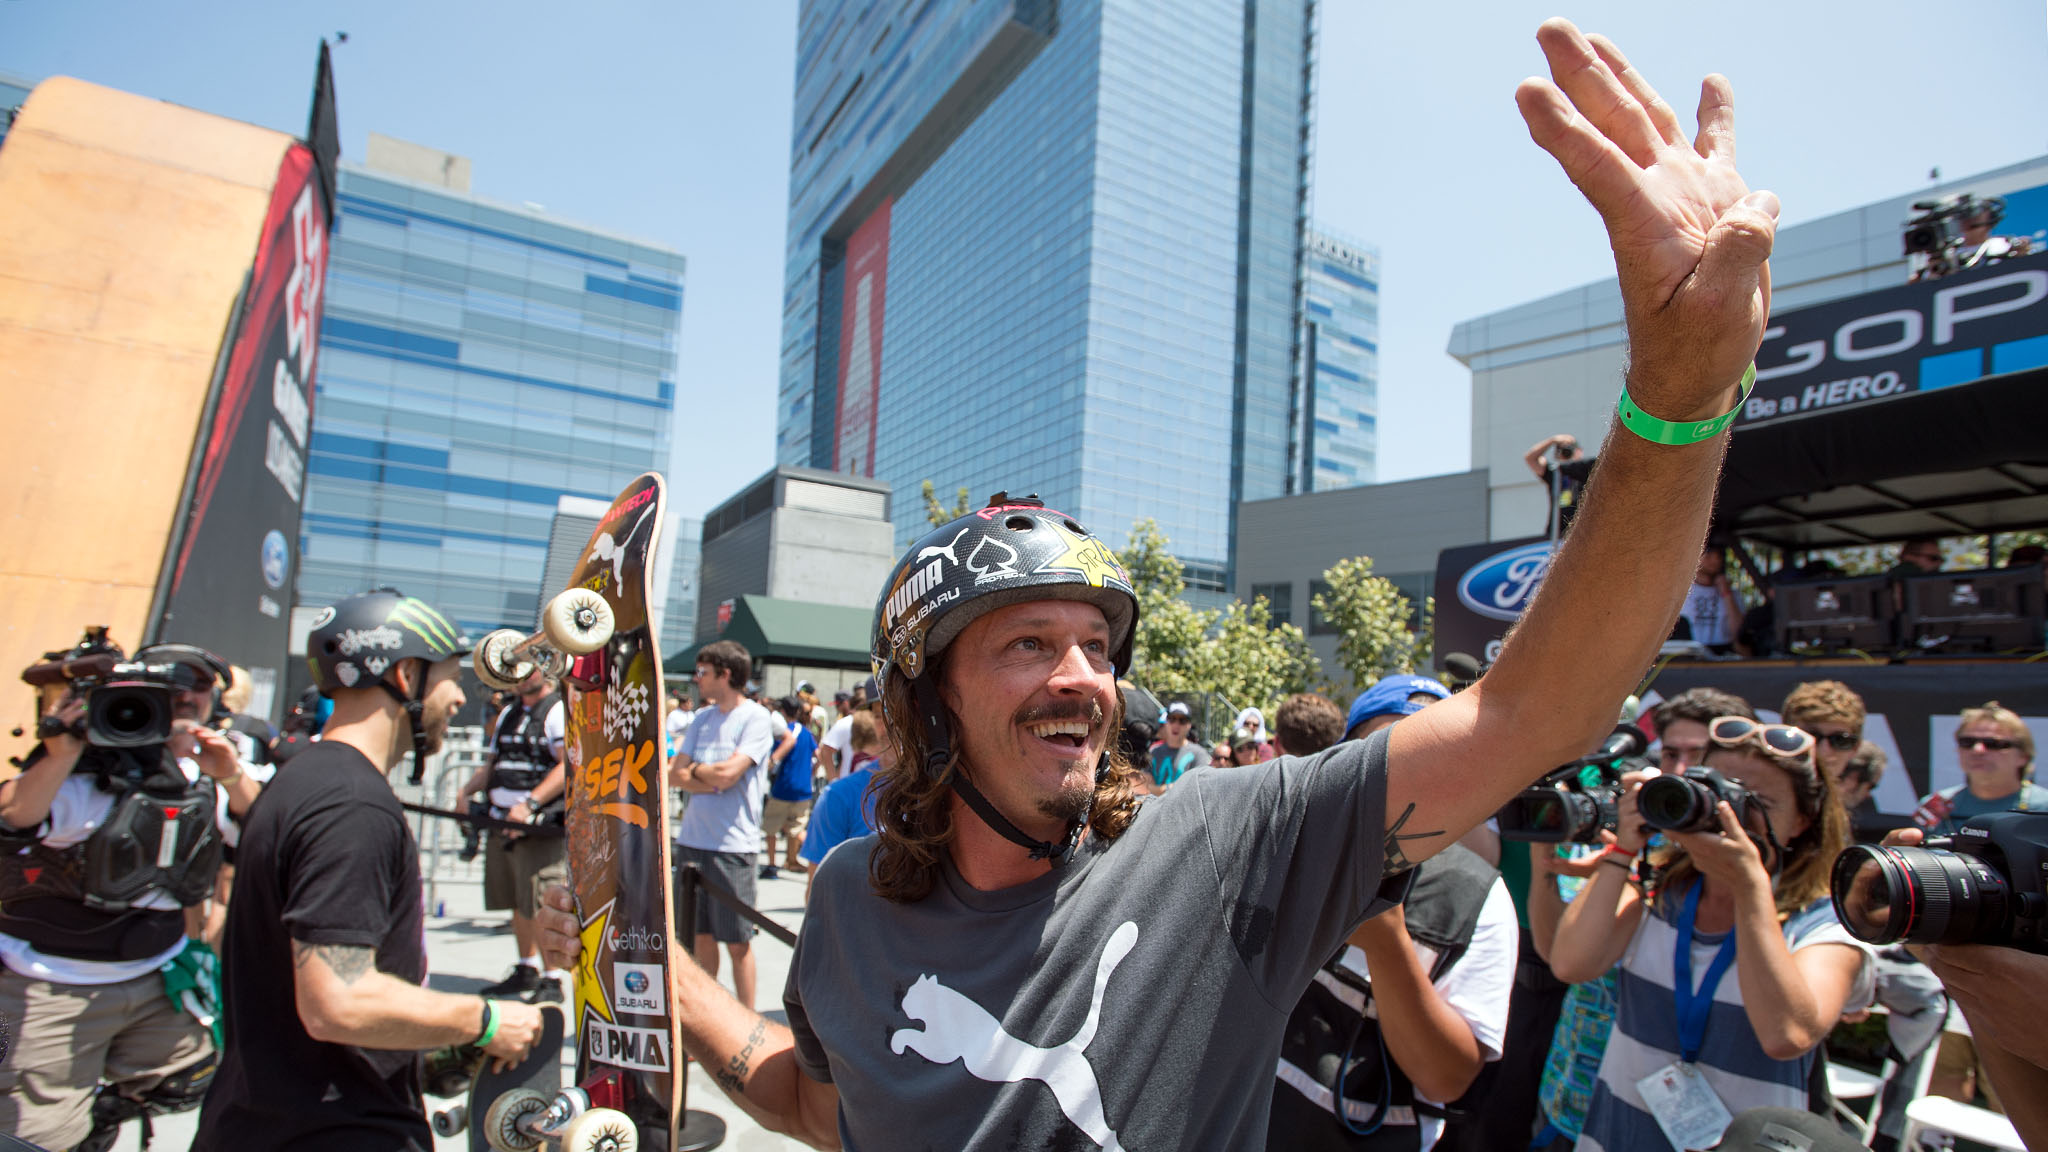 Before 2013, Bucky Lasek hadn't brought home a gold in Vert since 2006. All that changed this year: On Saturday the 40-year-old skateboard legend took home his fourth consecutive X Games Vert gold medal.